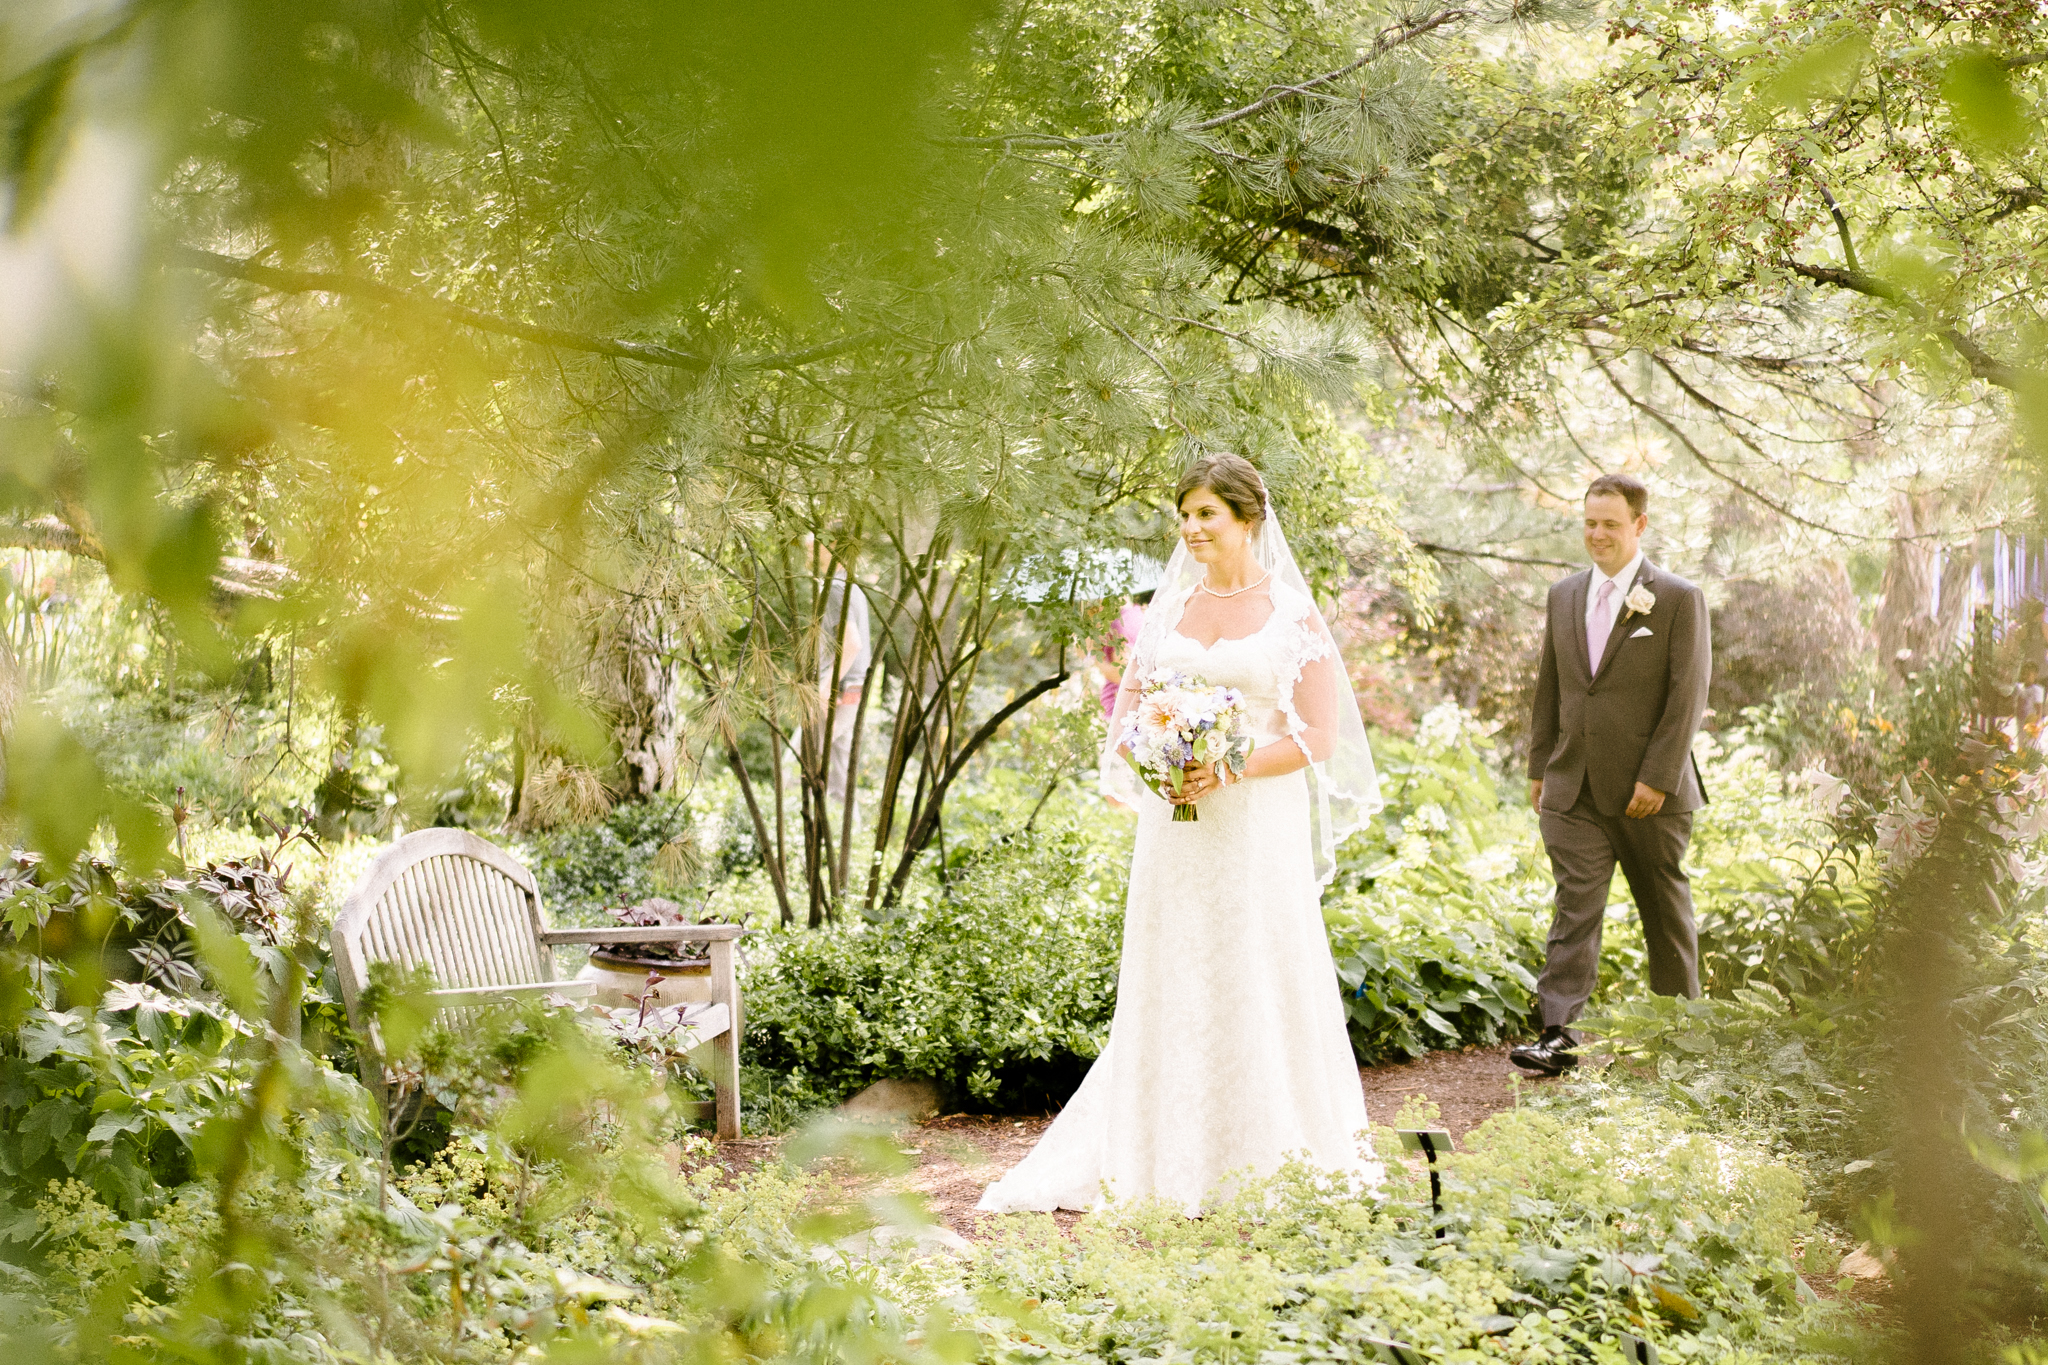 denver-botanical-garden-wedding-handcrafted_tj-romero_wedding-photographer-11.jpg